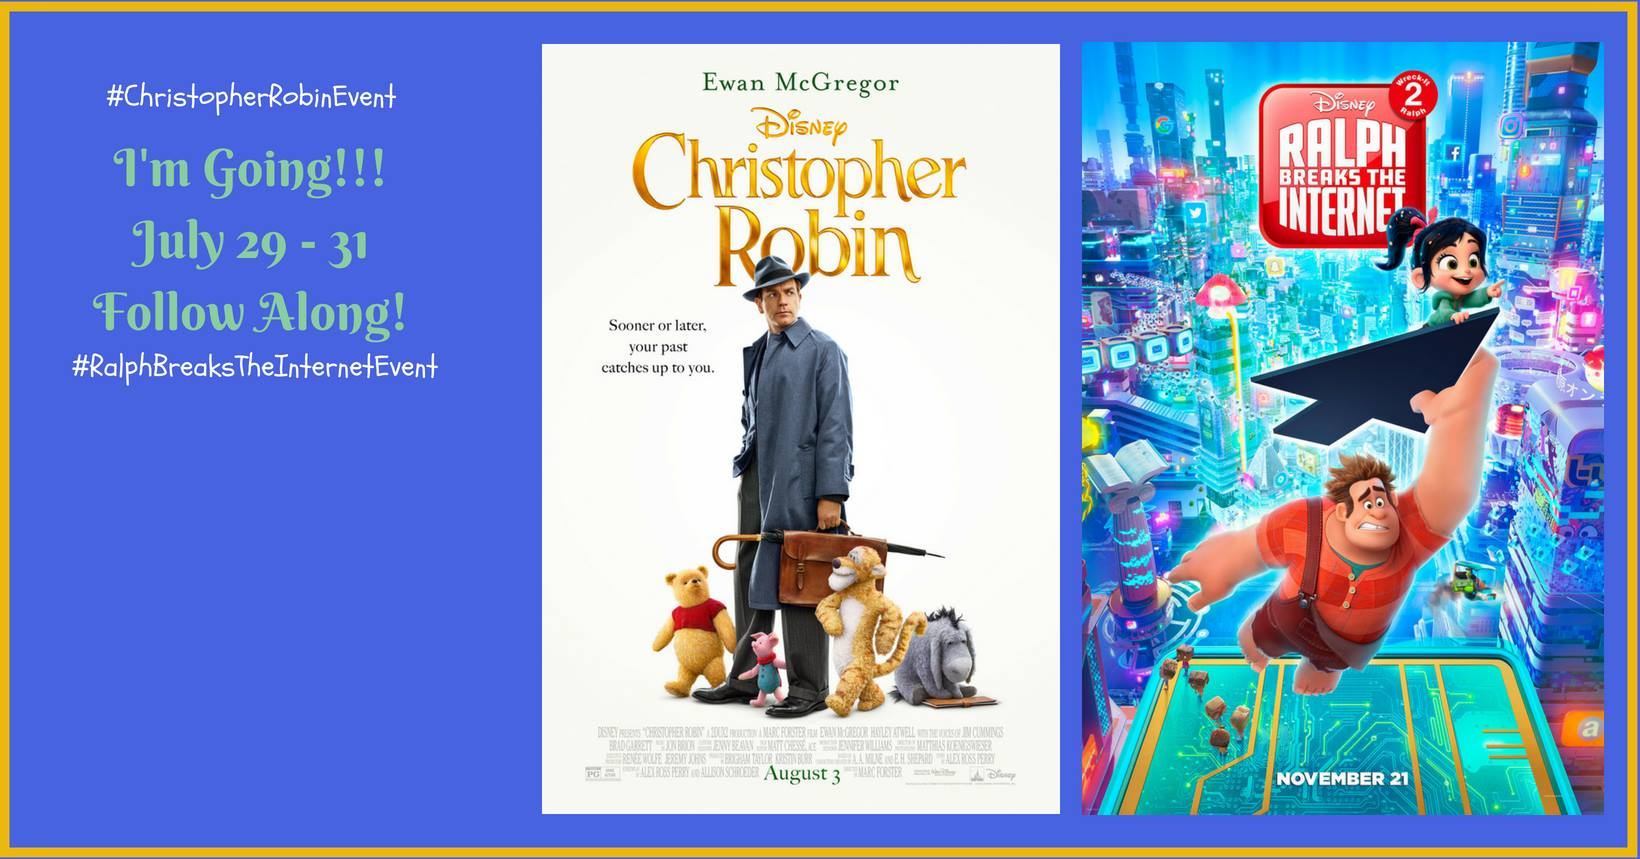 I'll be in Los Angeles for the Christopher Robin premiere!